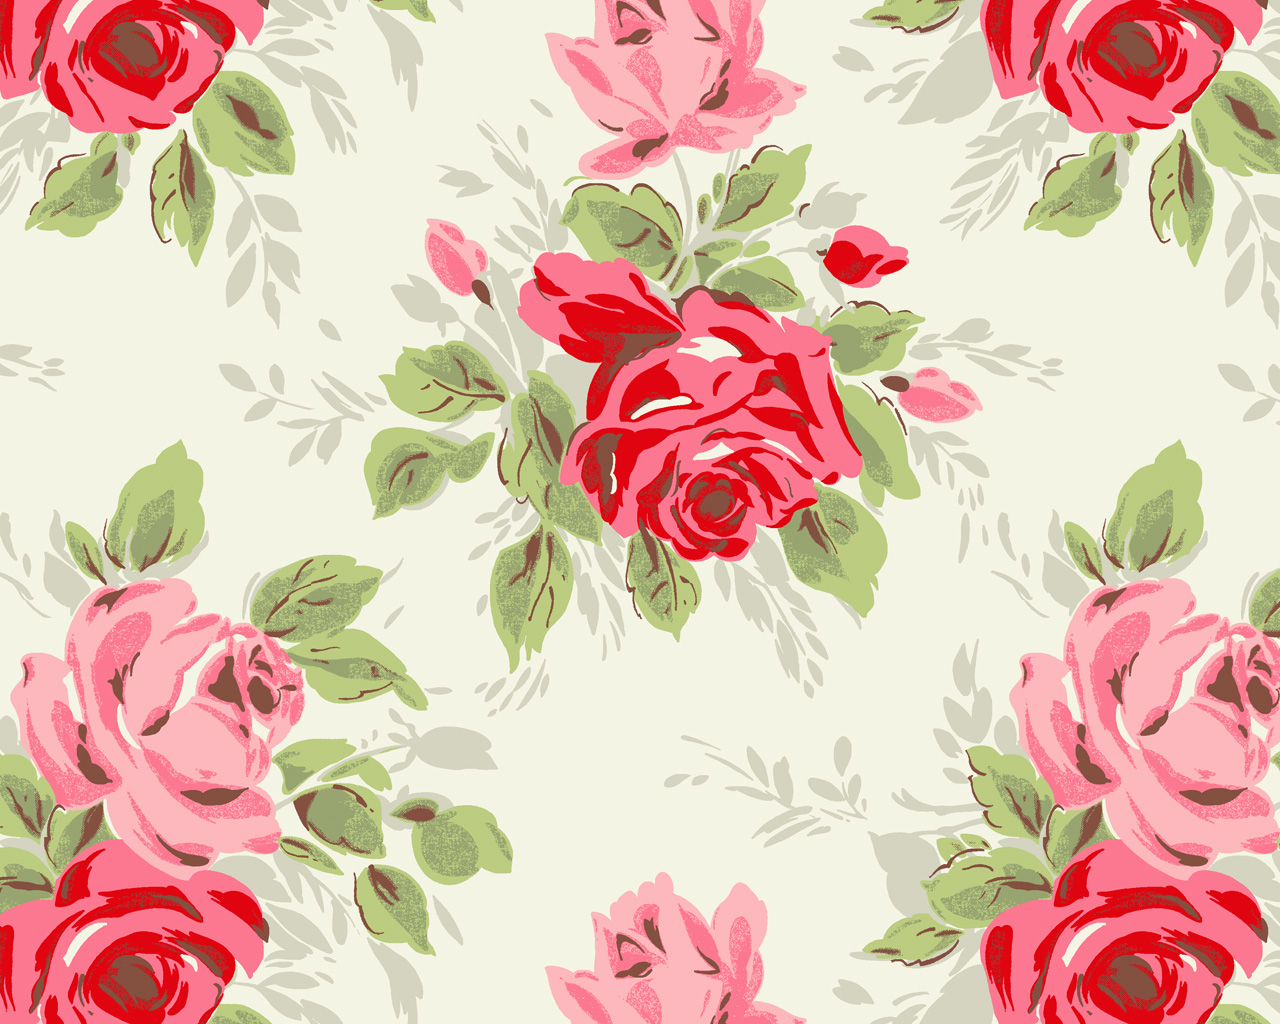 Floral Print Wallpaper Sf Wallpaper